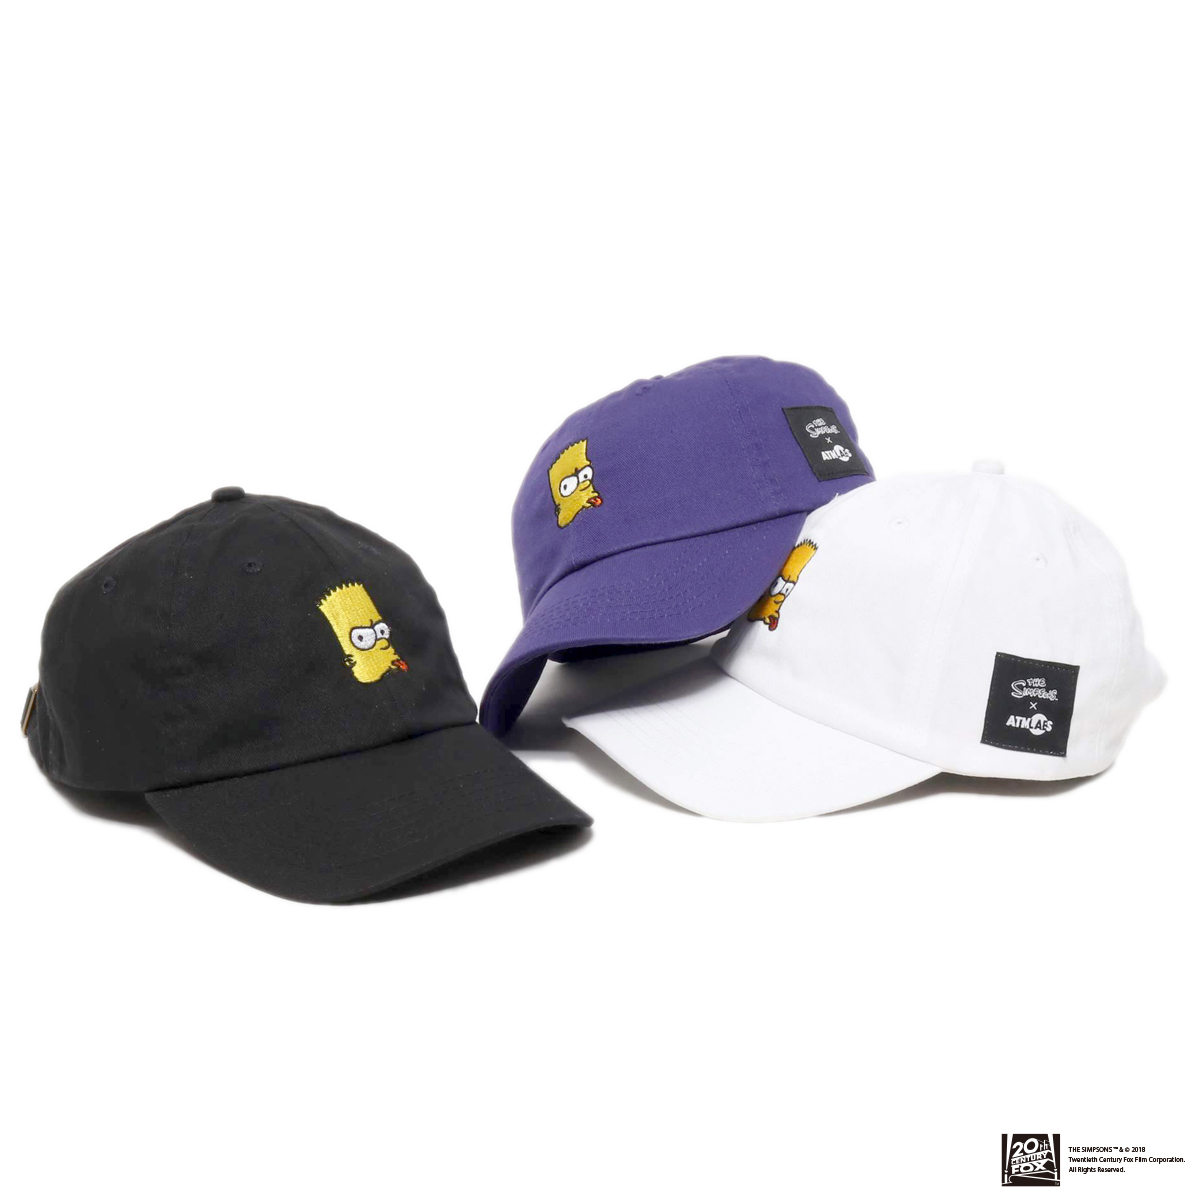 THE SIMPSONS x ATMOS LAB BART EMBROIDERY 6 PANEL CAP